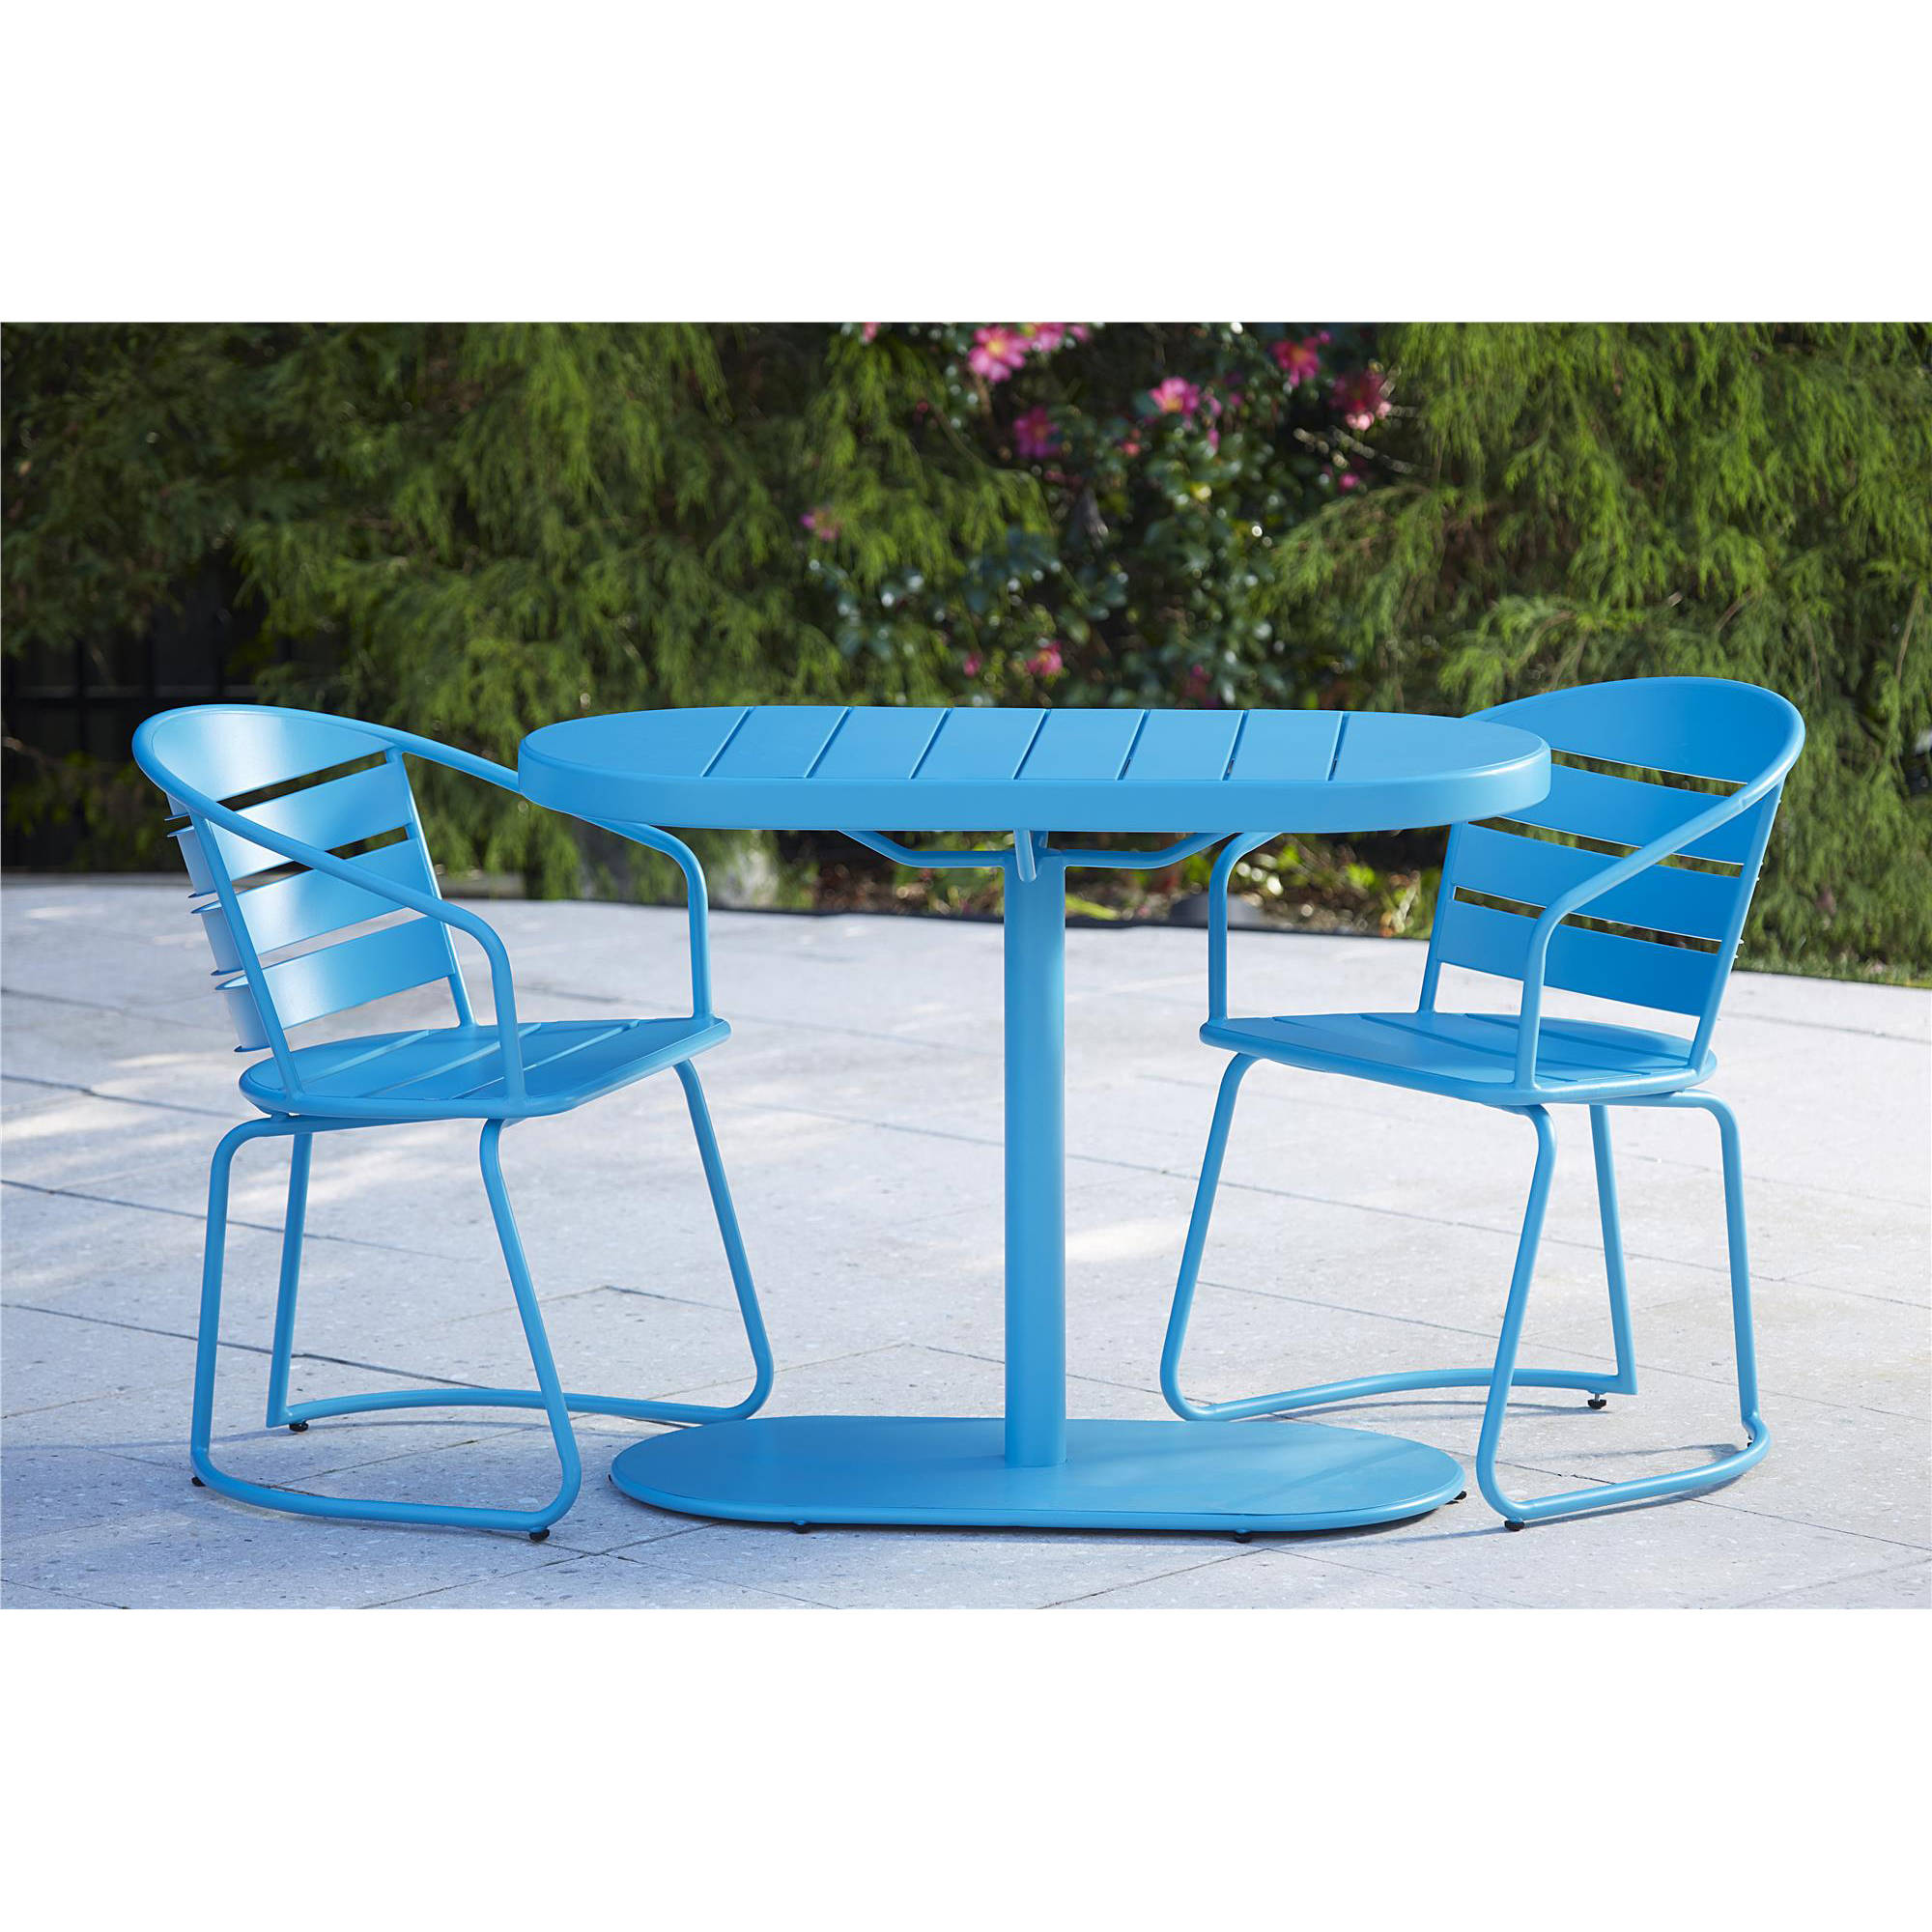 Cosco Outdoor 3-Piece Metro Retro Nesting Bistro Steel Patio Furniture Set, Assembled, Teal